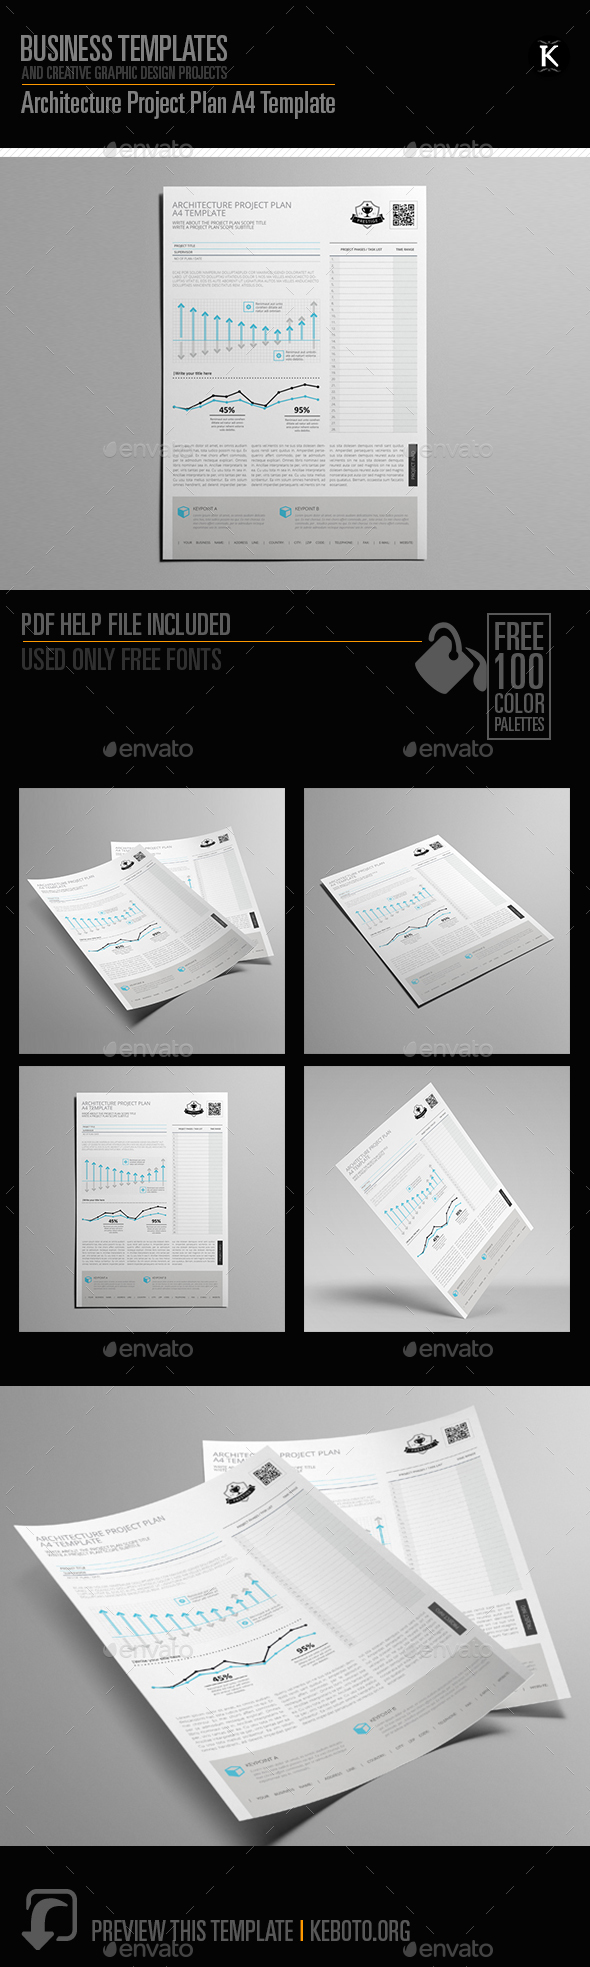 Architecture Project Plan A4 Template - Miscellaneous Print Templates